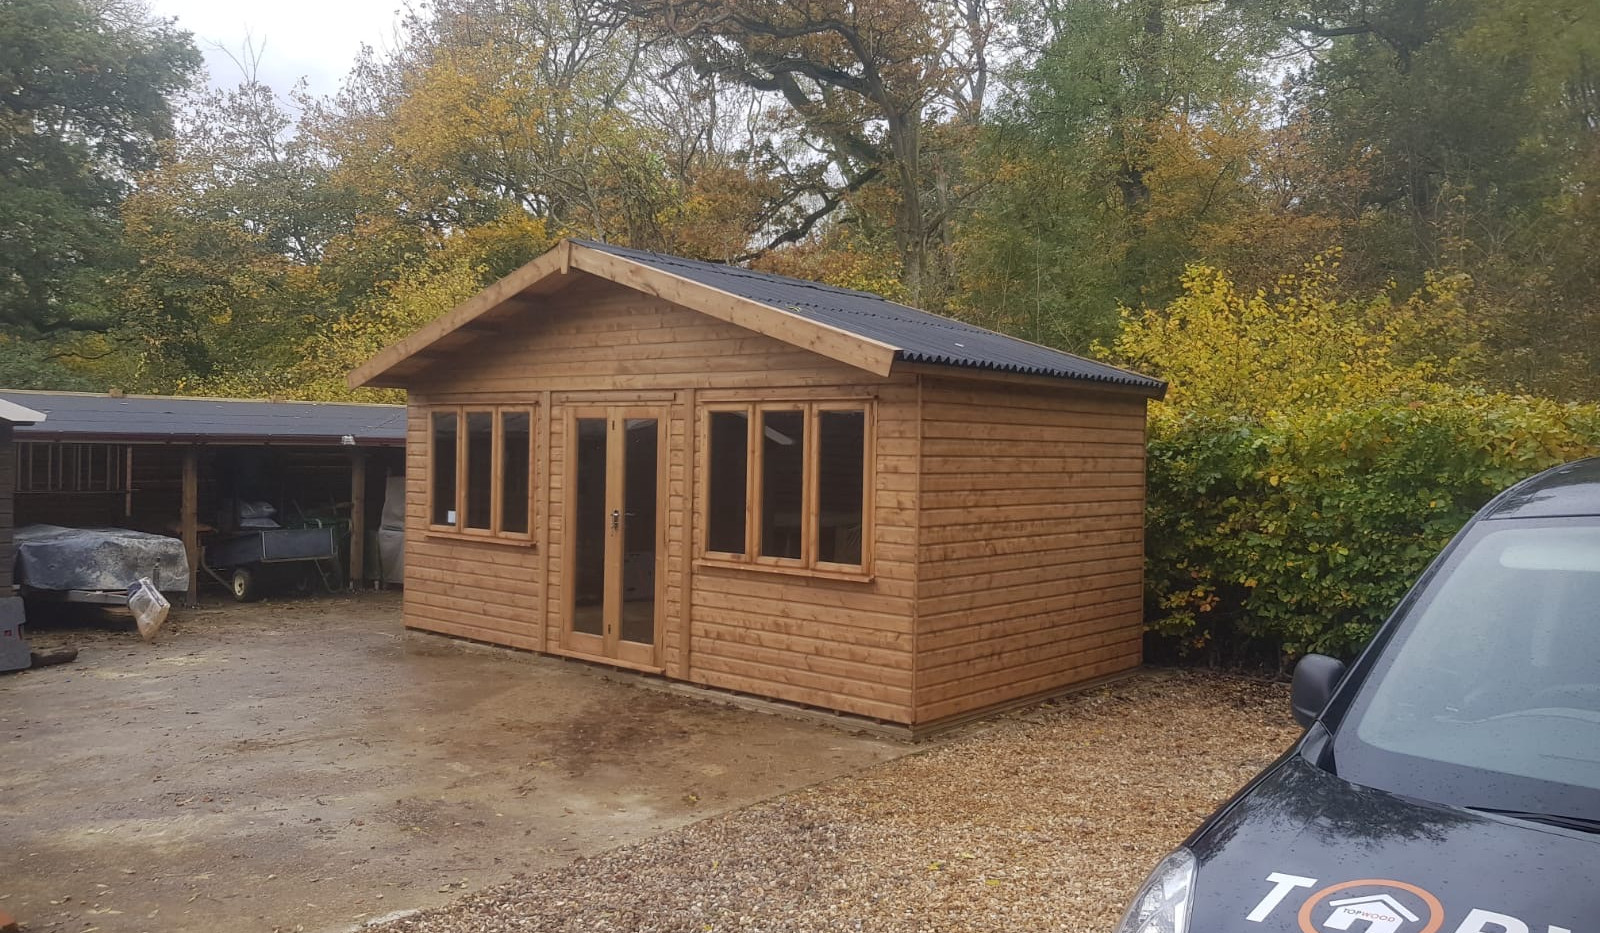 Bourne Storage Building - Workshop / Garage / Office